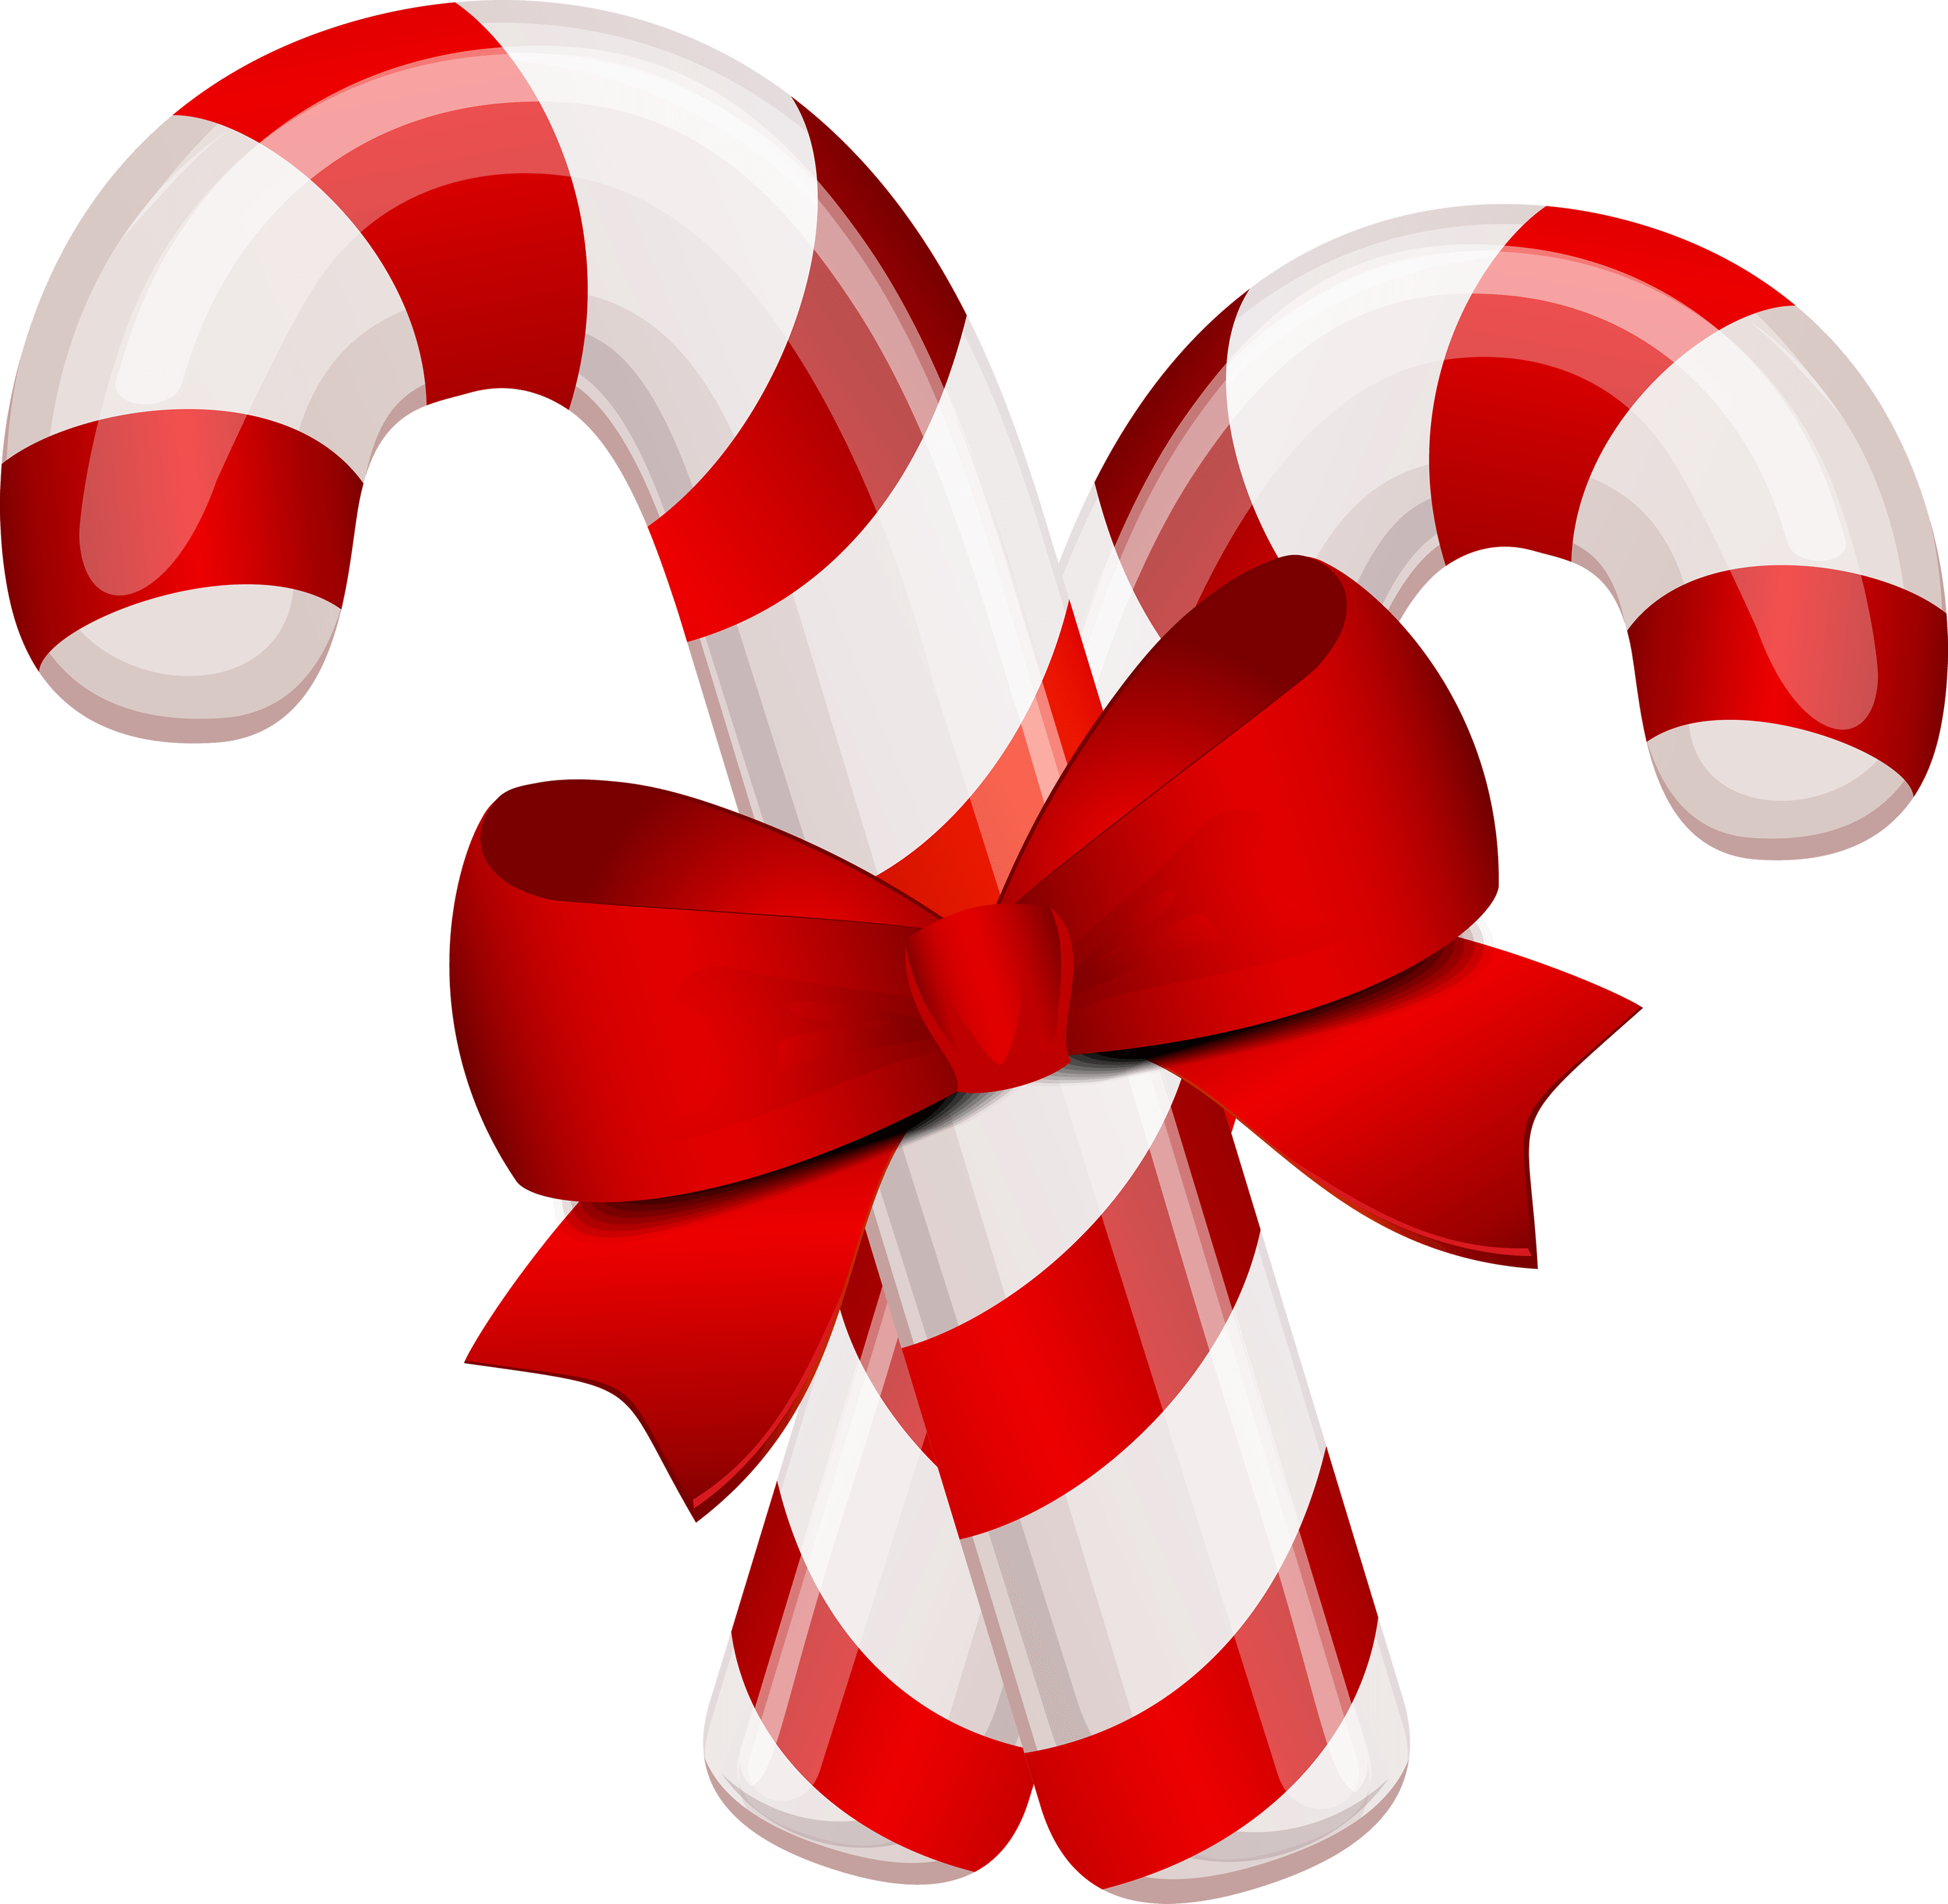 Christmas Candy Png.Christmas Candy Duo Transparent Png Stickpng